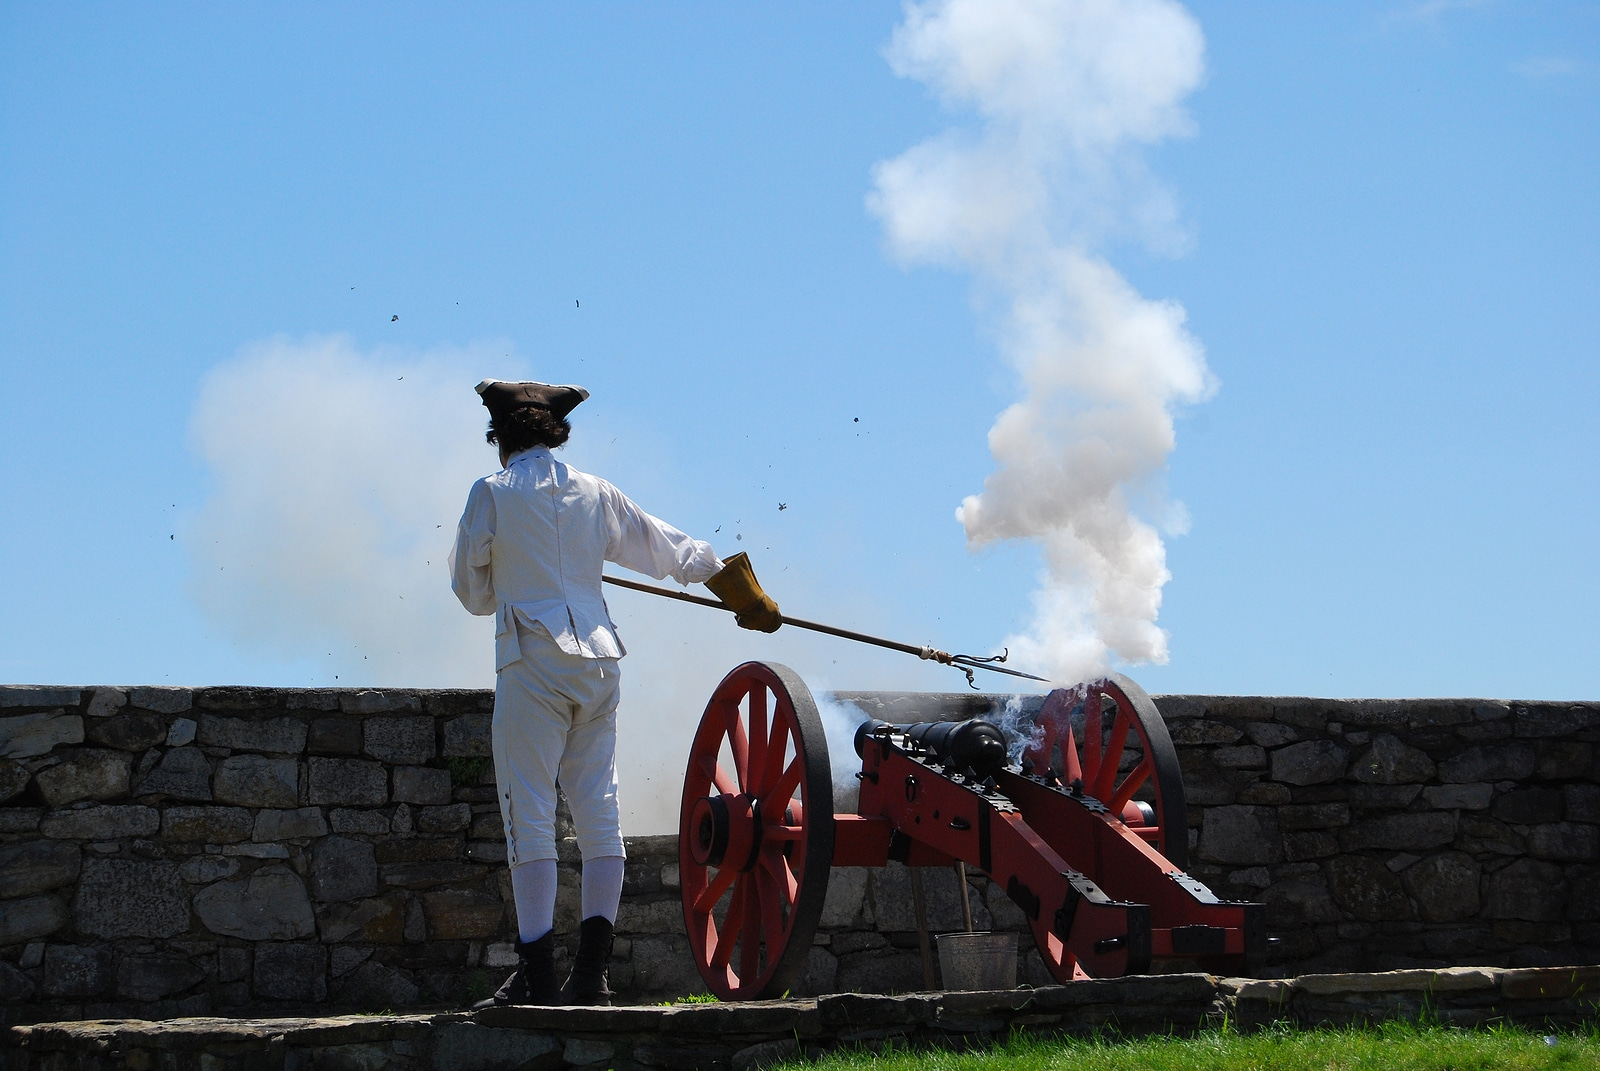 Tripps Travel Network Reviews Fort Ticonderoga 1